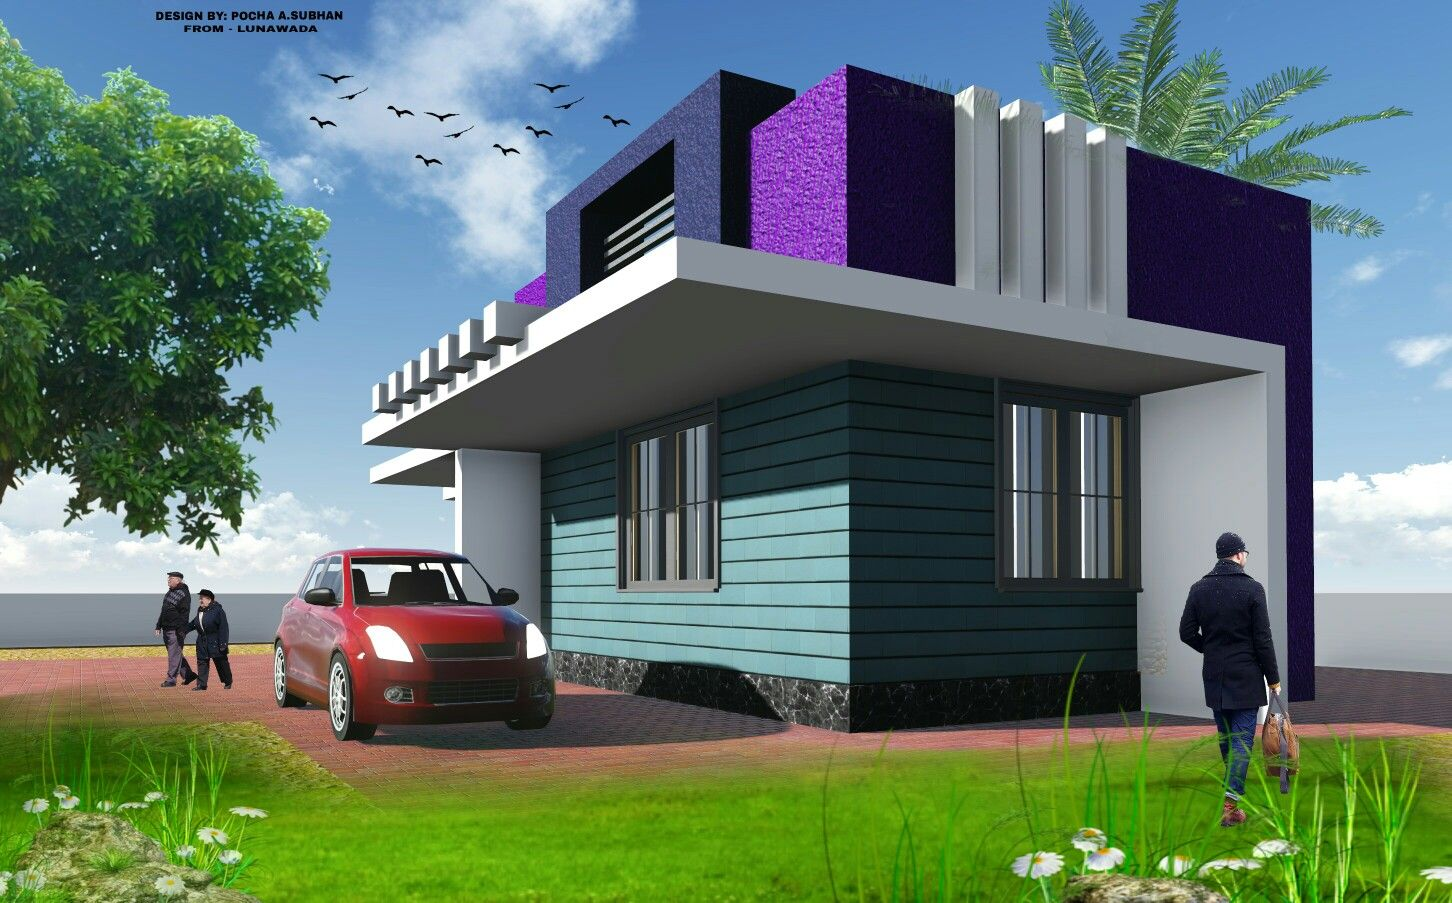 indian house design elevation by pocha a subhan a subhanpocha